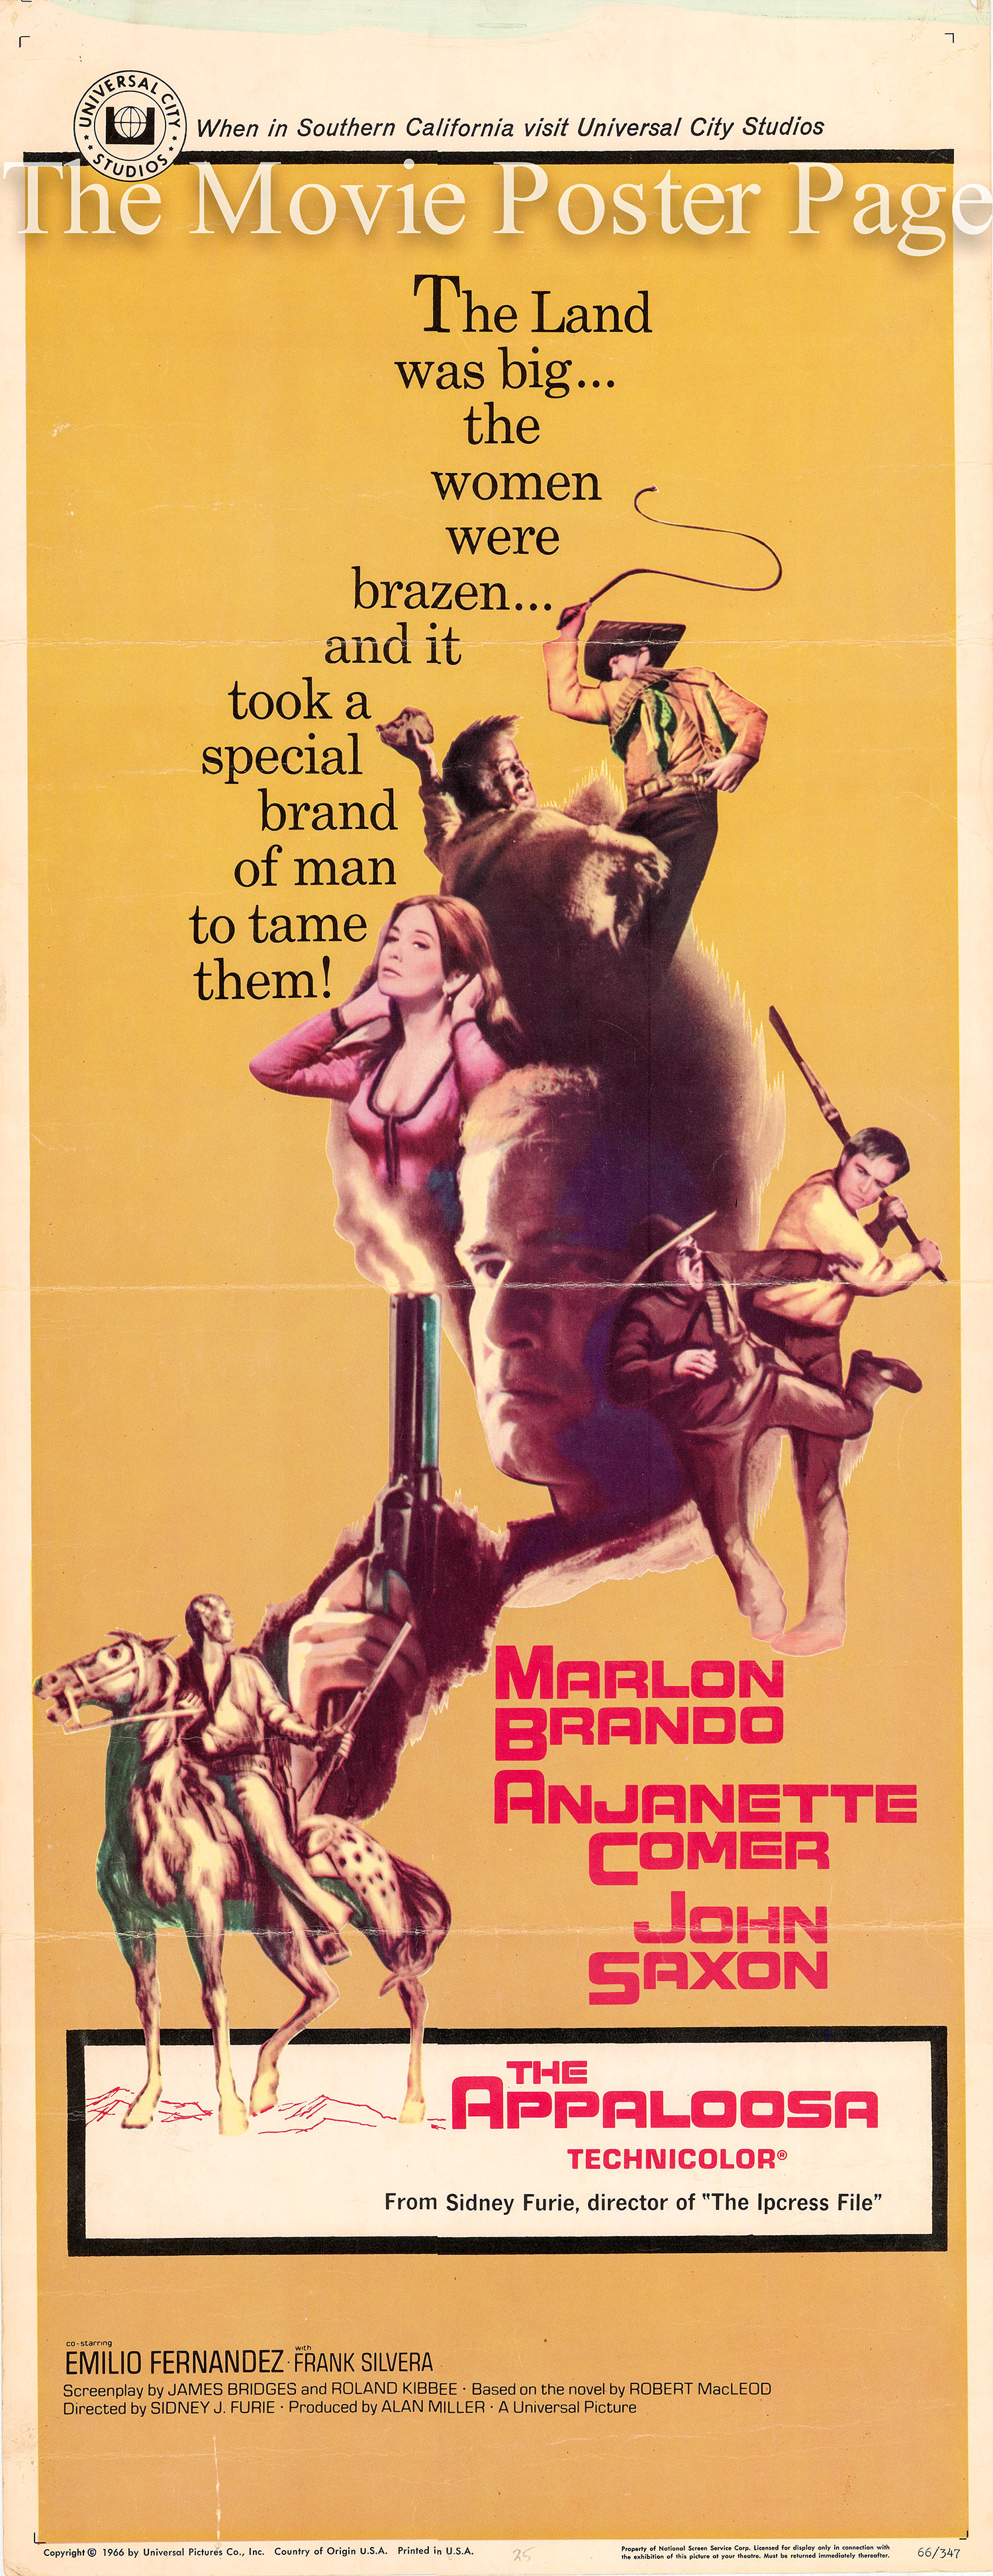 Pictured is a US insert poster for the 1966 Sidney J. Furie film Appaloosa starring Marlon Brando.